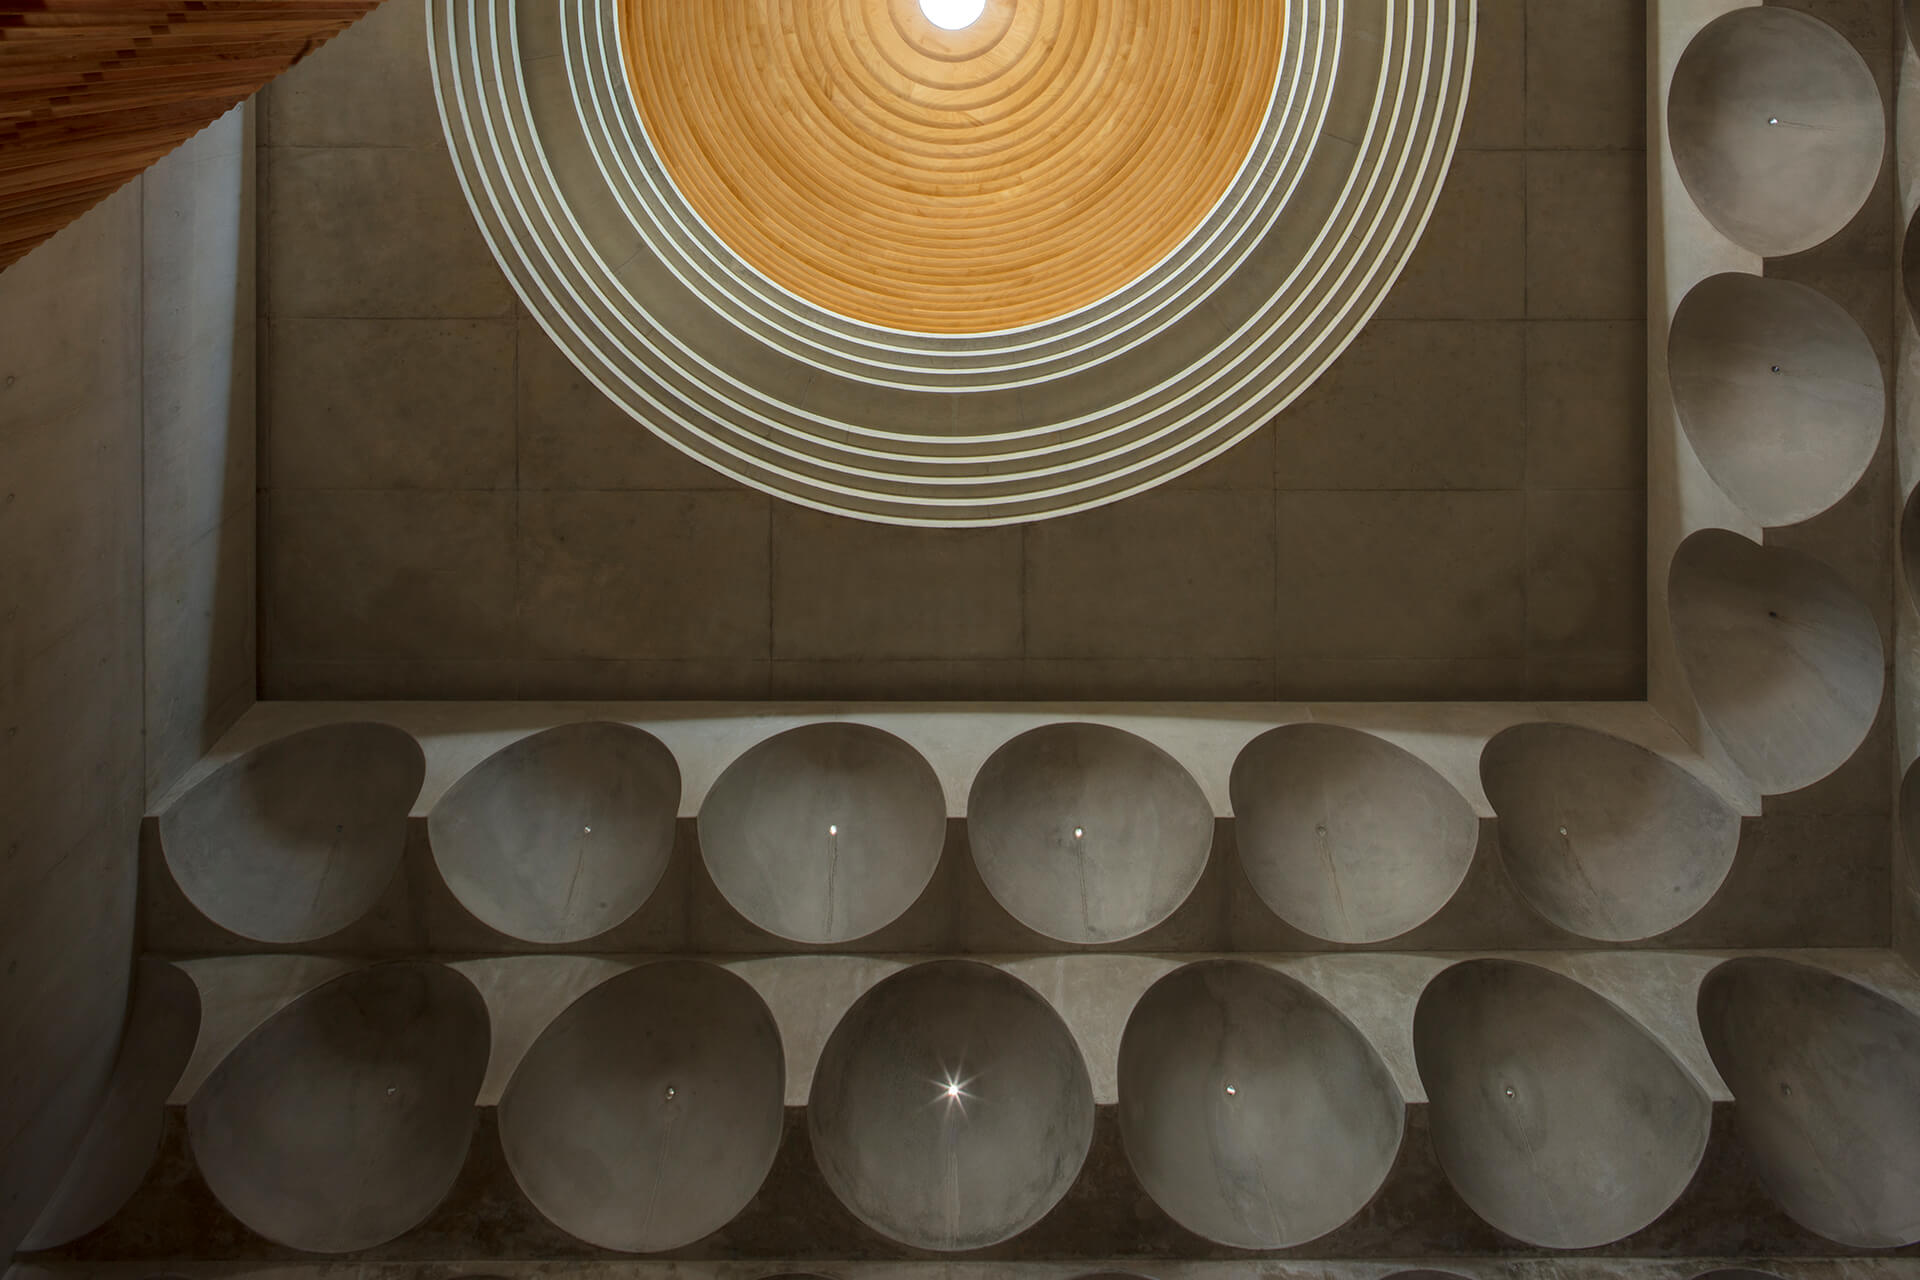 A new mosque in Australia shows Islamic architecture going beautifully brutalist